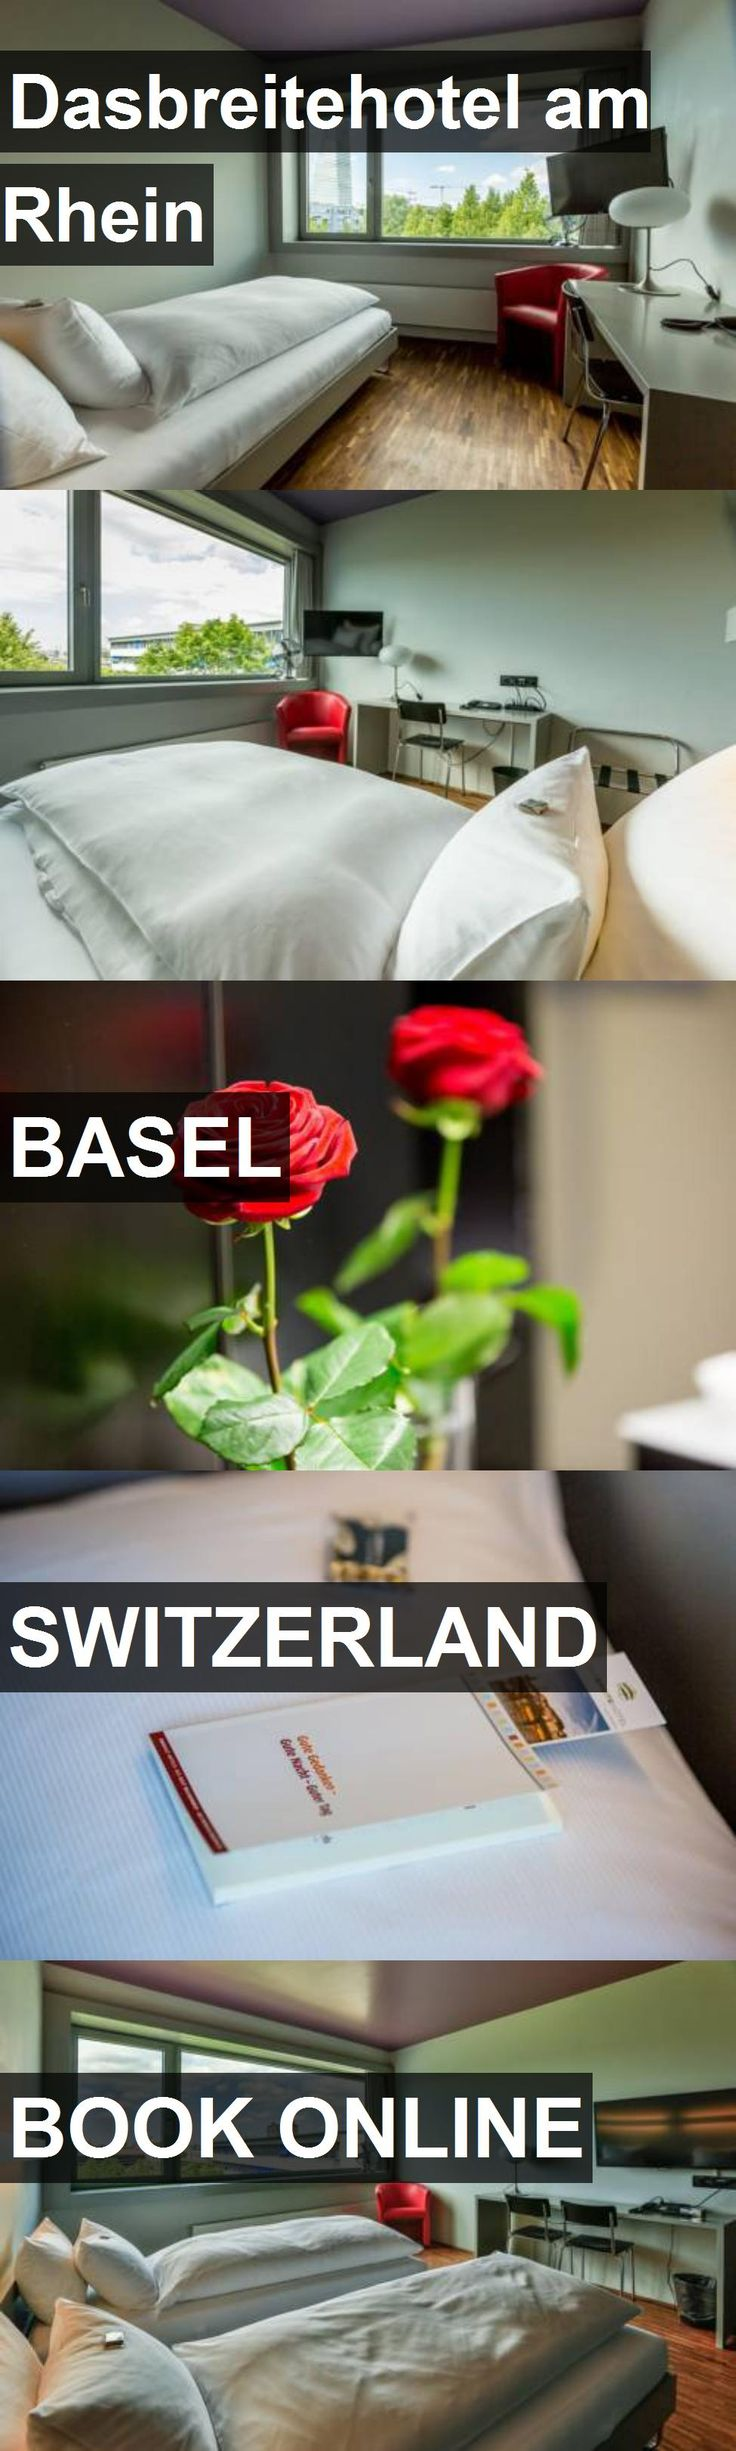 Dasbreitehotel am Rhein in Basel, Switzerland. For more information, photos, reviews and best prices please follow the link. #Switzerland #Basel #travel #vacation #hotel